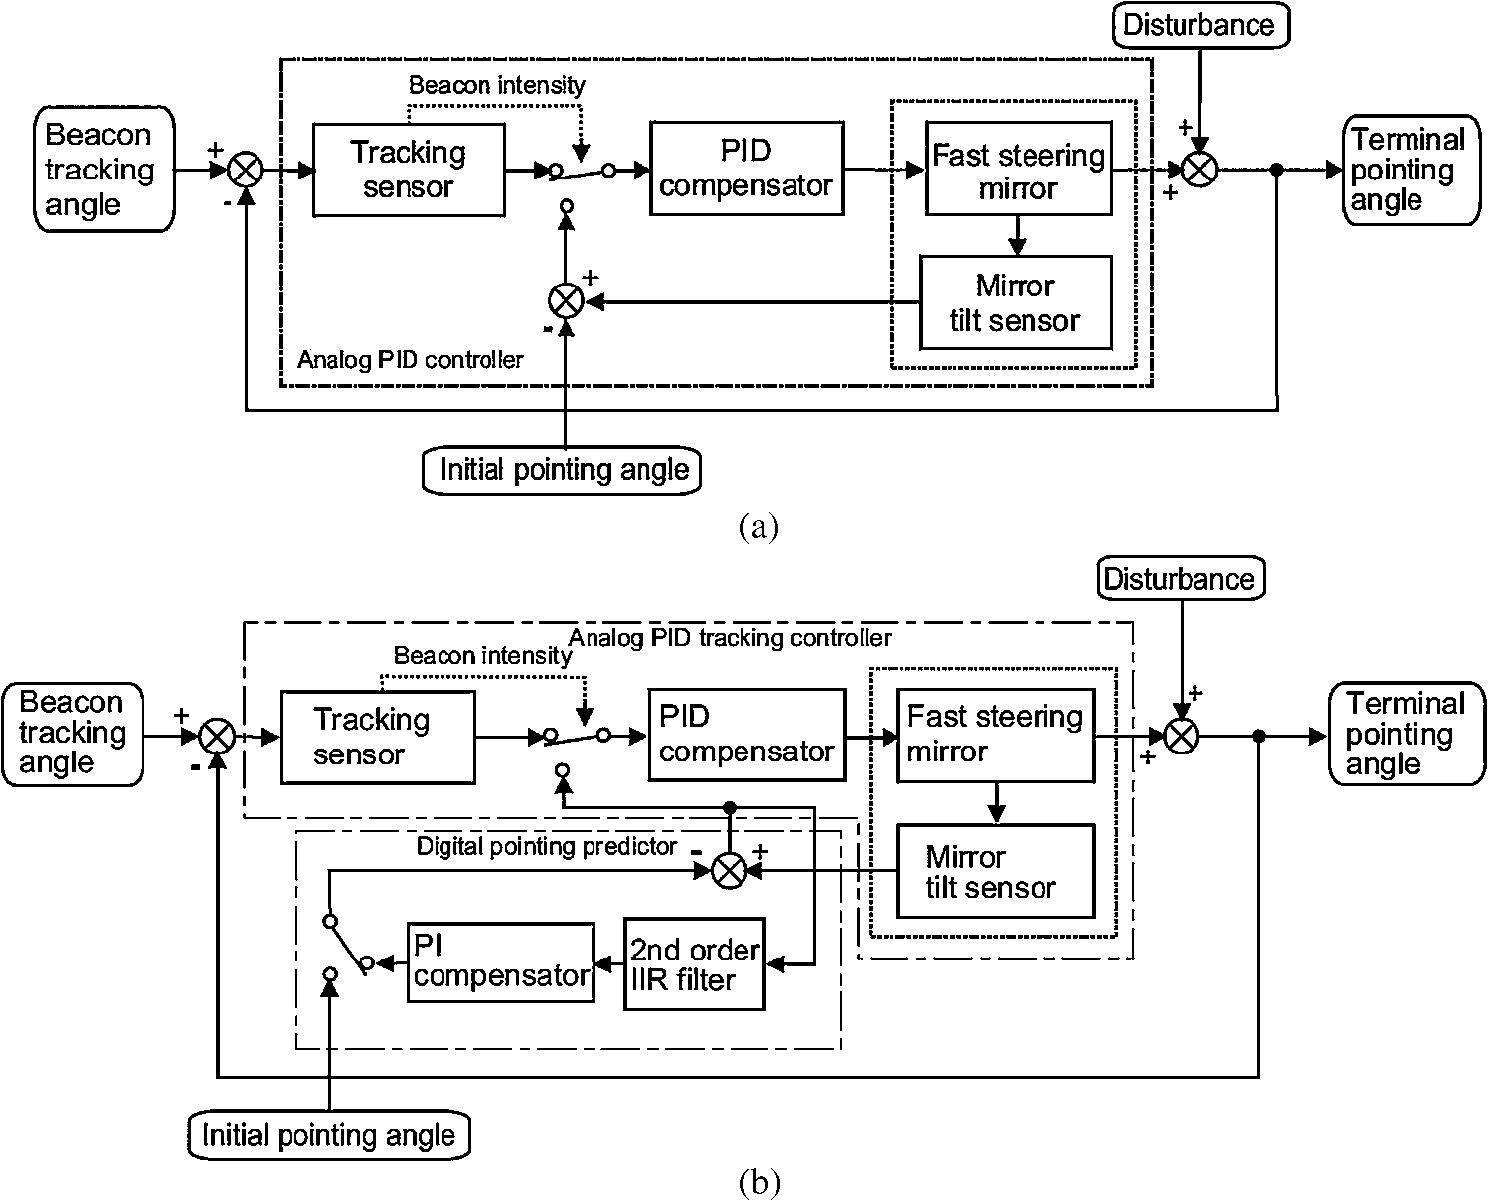 Operational Condition For Direct Single Mode Fiber Coupled Free Drawing Pid Electrical Line And Electronic Block Diagram Of Advanced Tracking System With Pointing Direction Predictor A Original Acquisition Controller Before April 2010